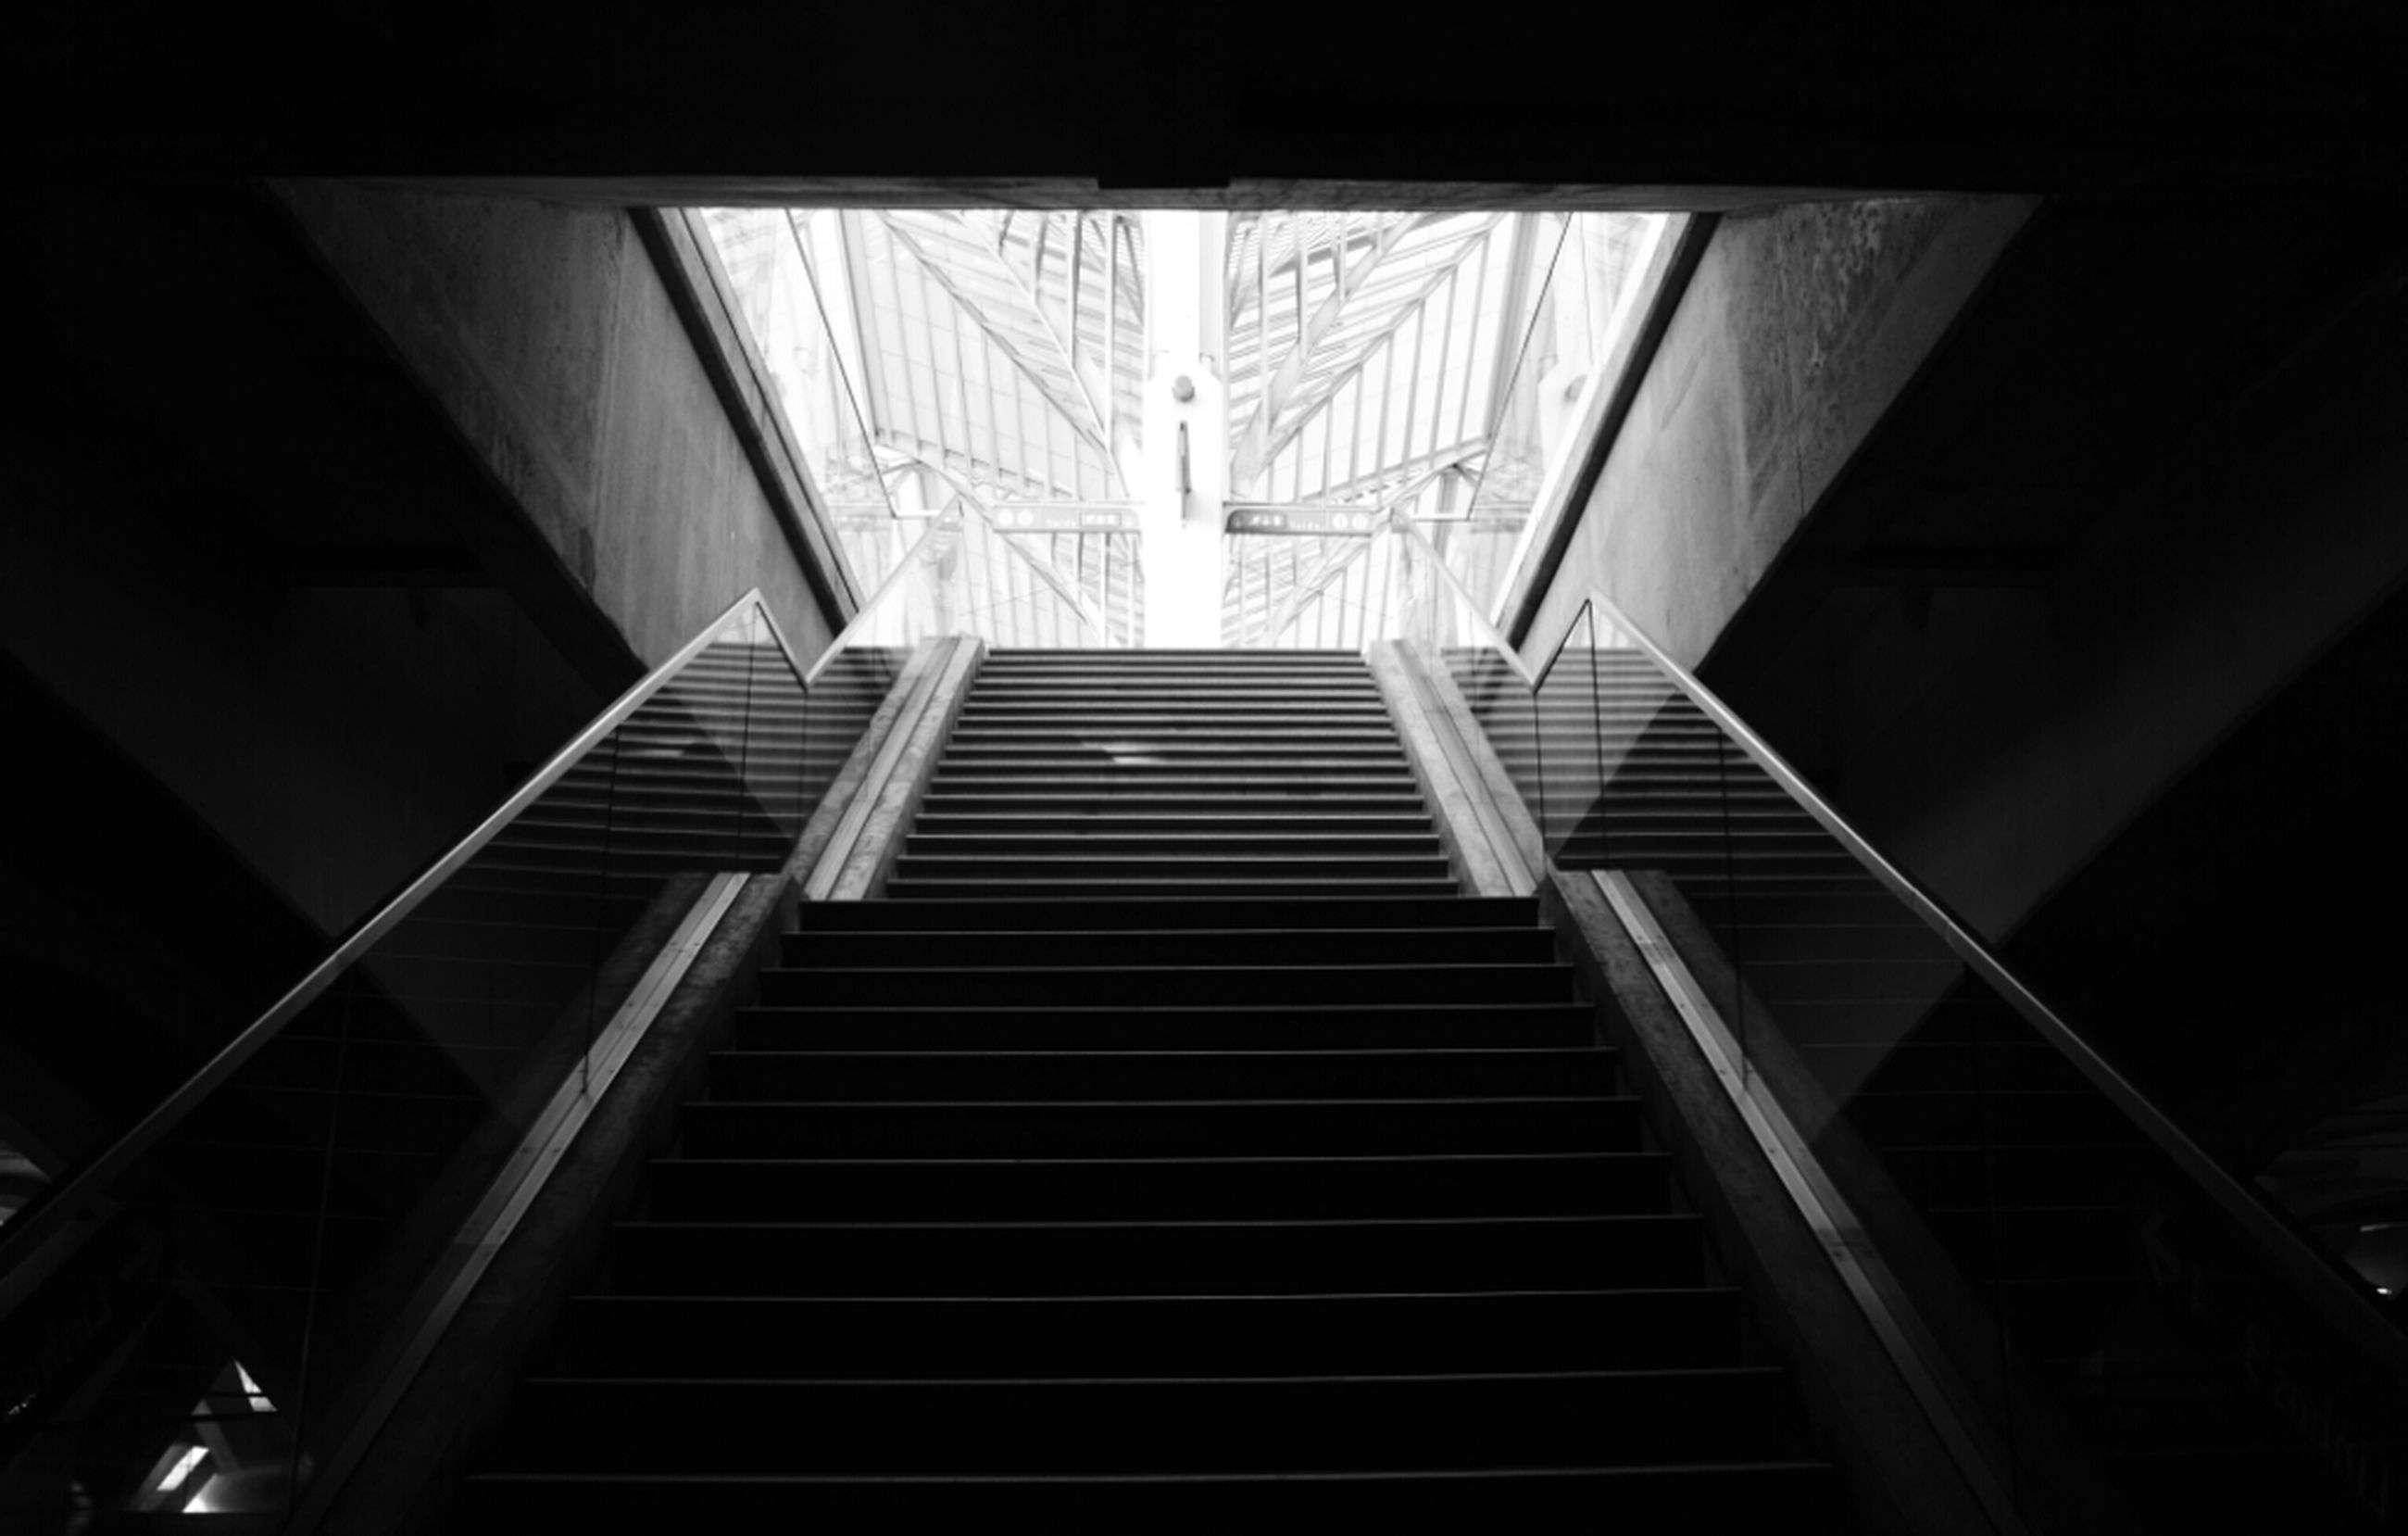 architecture, built structure, low angle view, indoors, staircase, steps and staircases, steps, railing, building, modern, building exterior, pattern, diminishing perspective, no people, metal, directly below, the way forward, stairs, ceiling, day